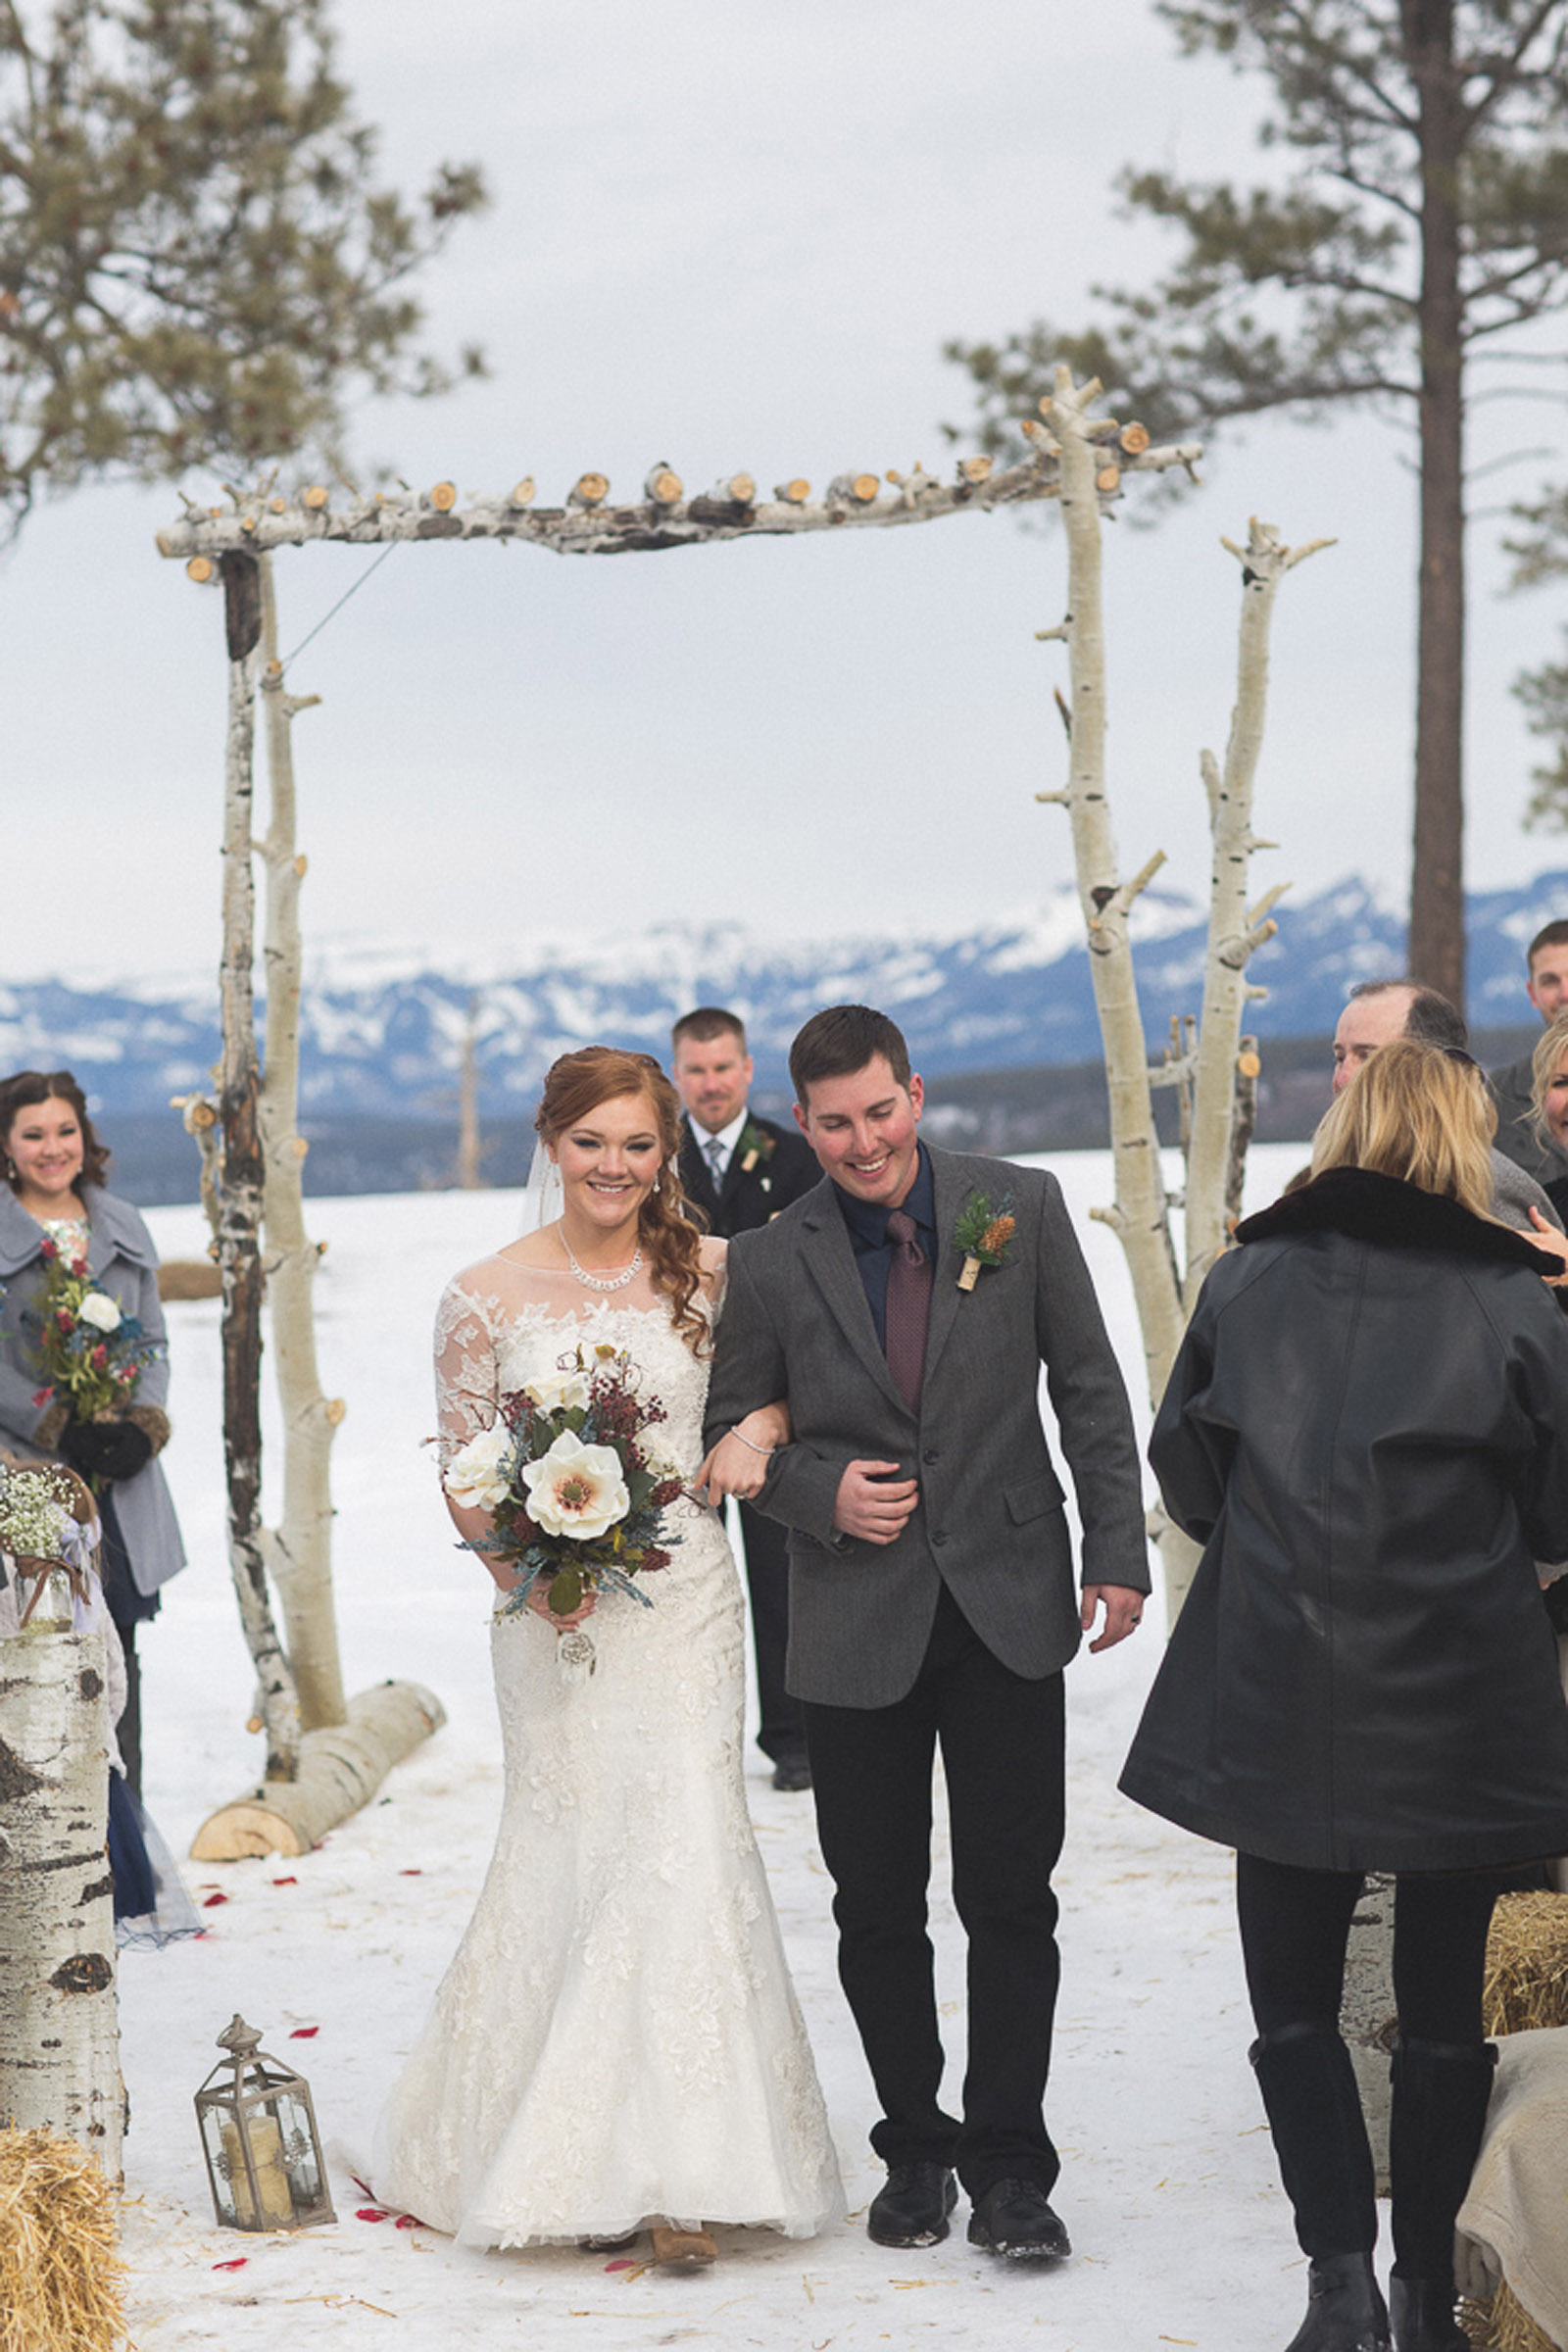 128-wedding-ceremony-in-pagosa-springs-wedding-photographer-snow-winter-wedding